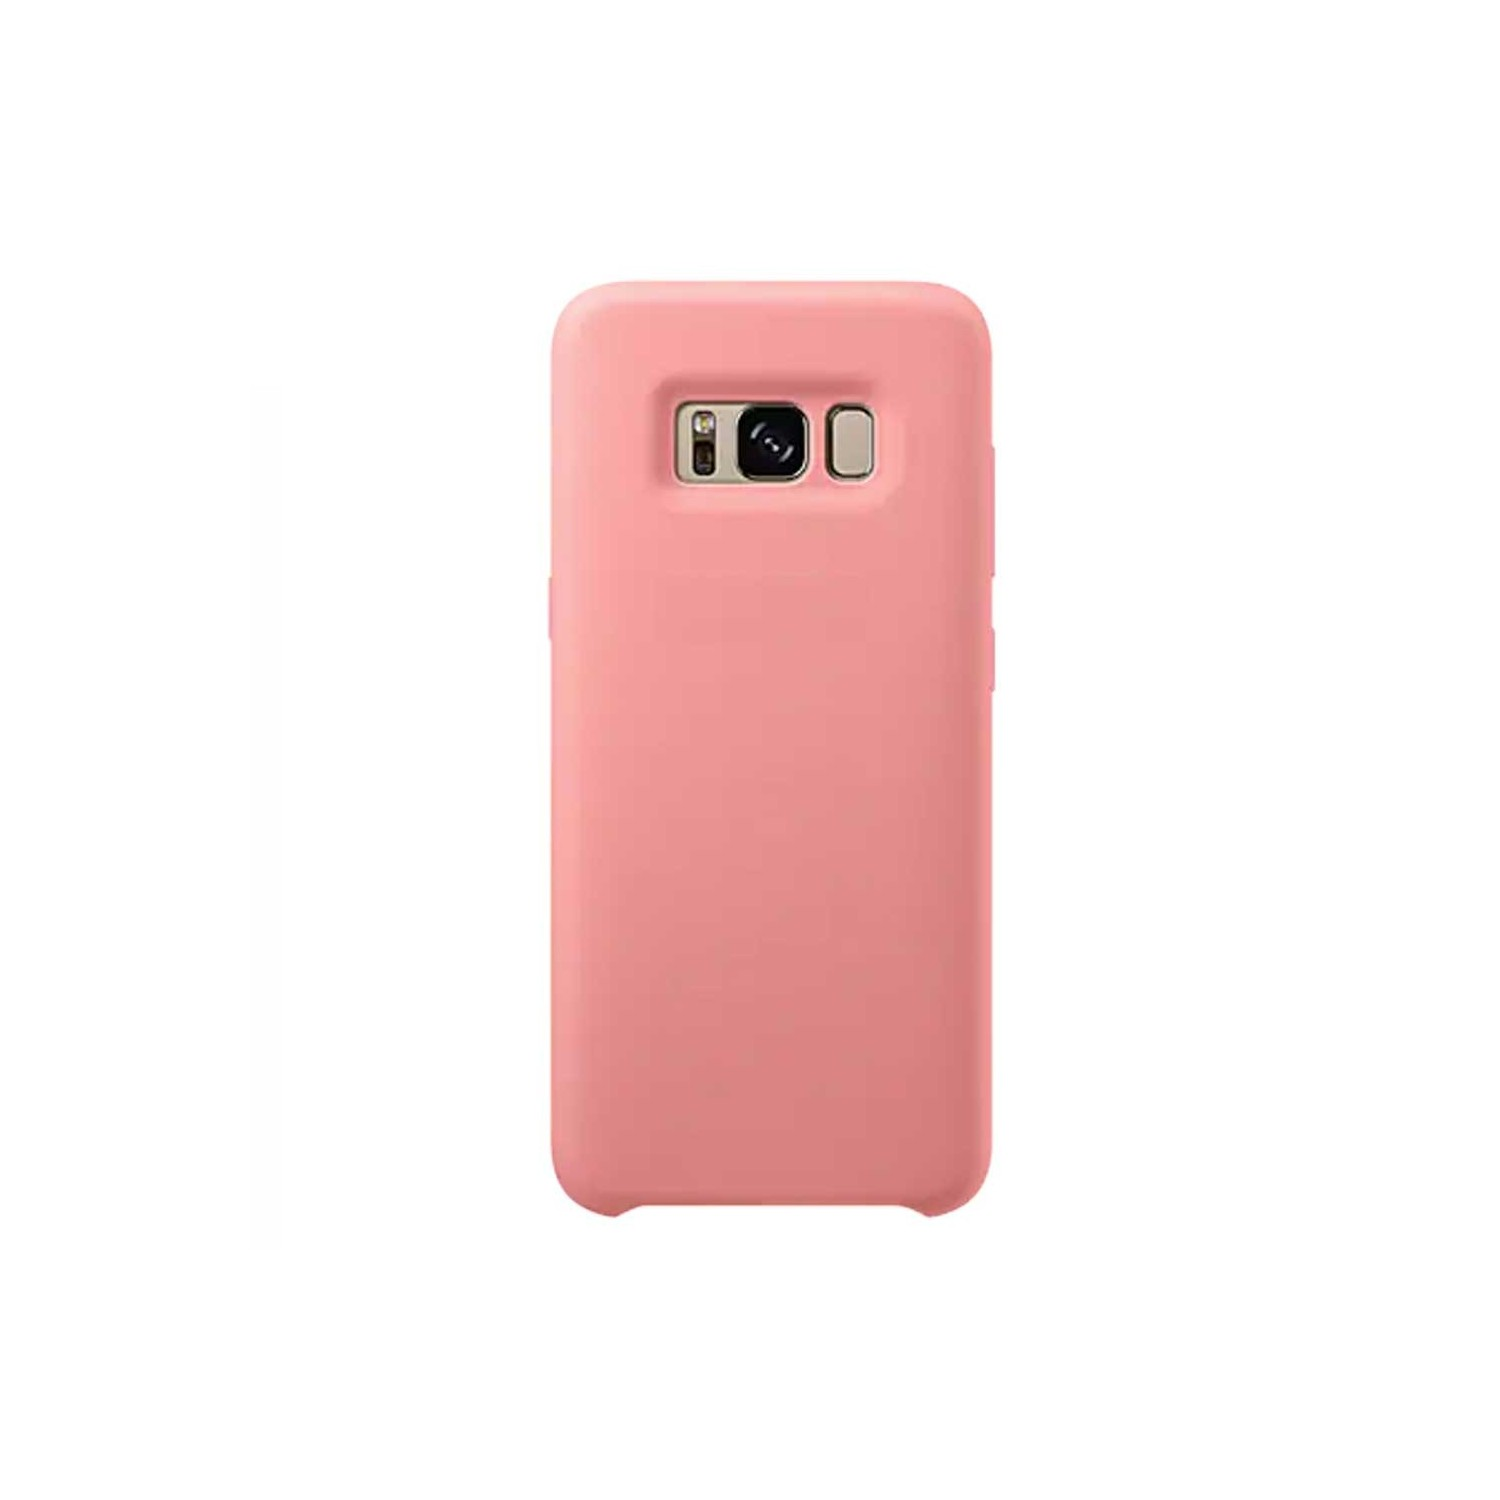 Case - GSamsung Silicone Cover For Samsung Galaxy S8 - Pink